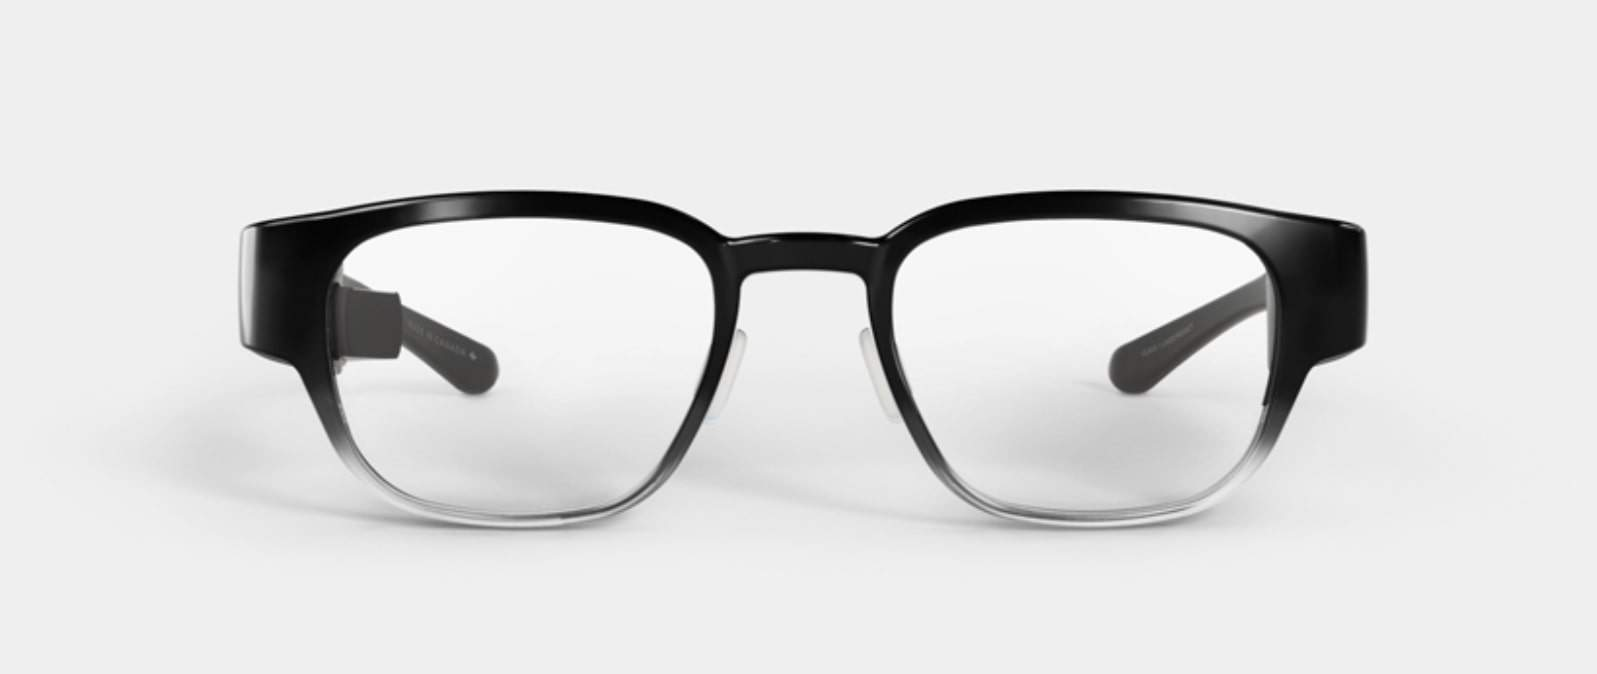 North Focals Smartglasses press image 01